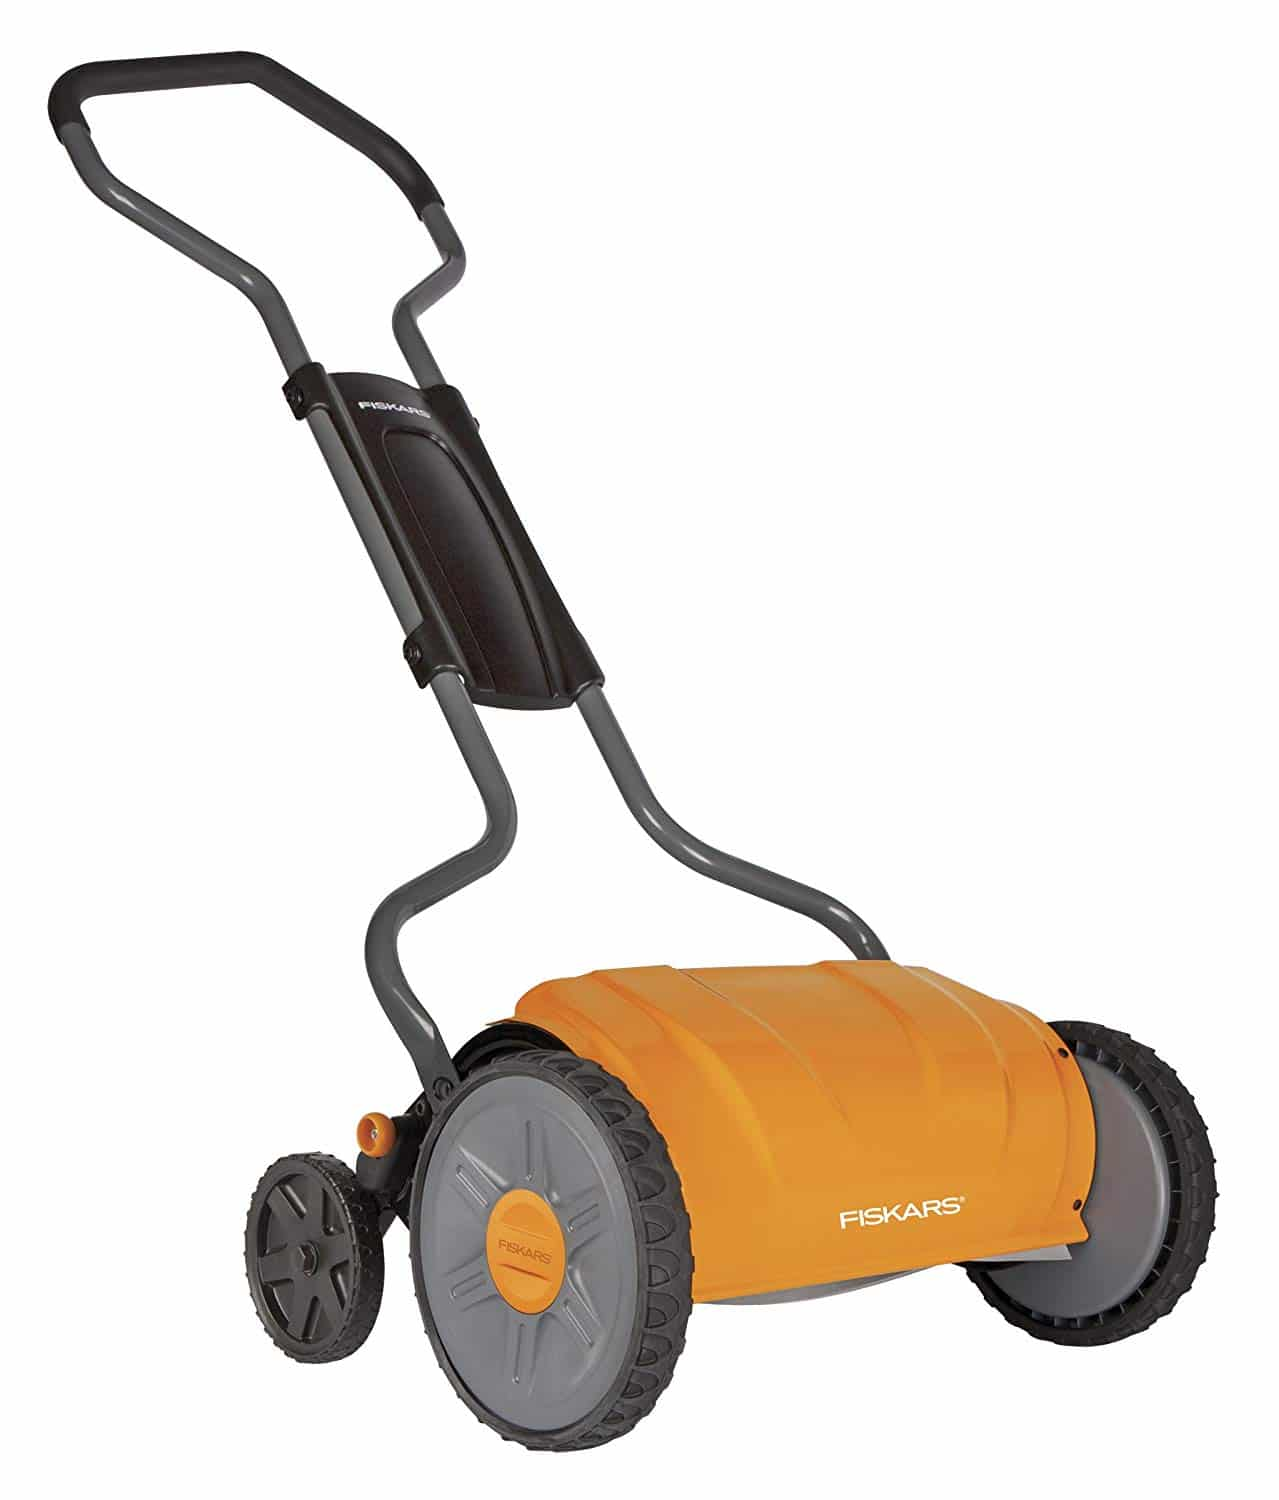 Fiskars Staysharp Push Reel Lawn Mower